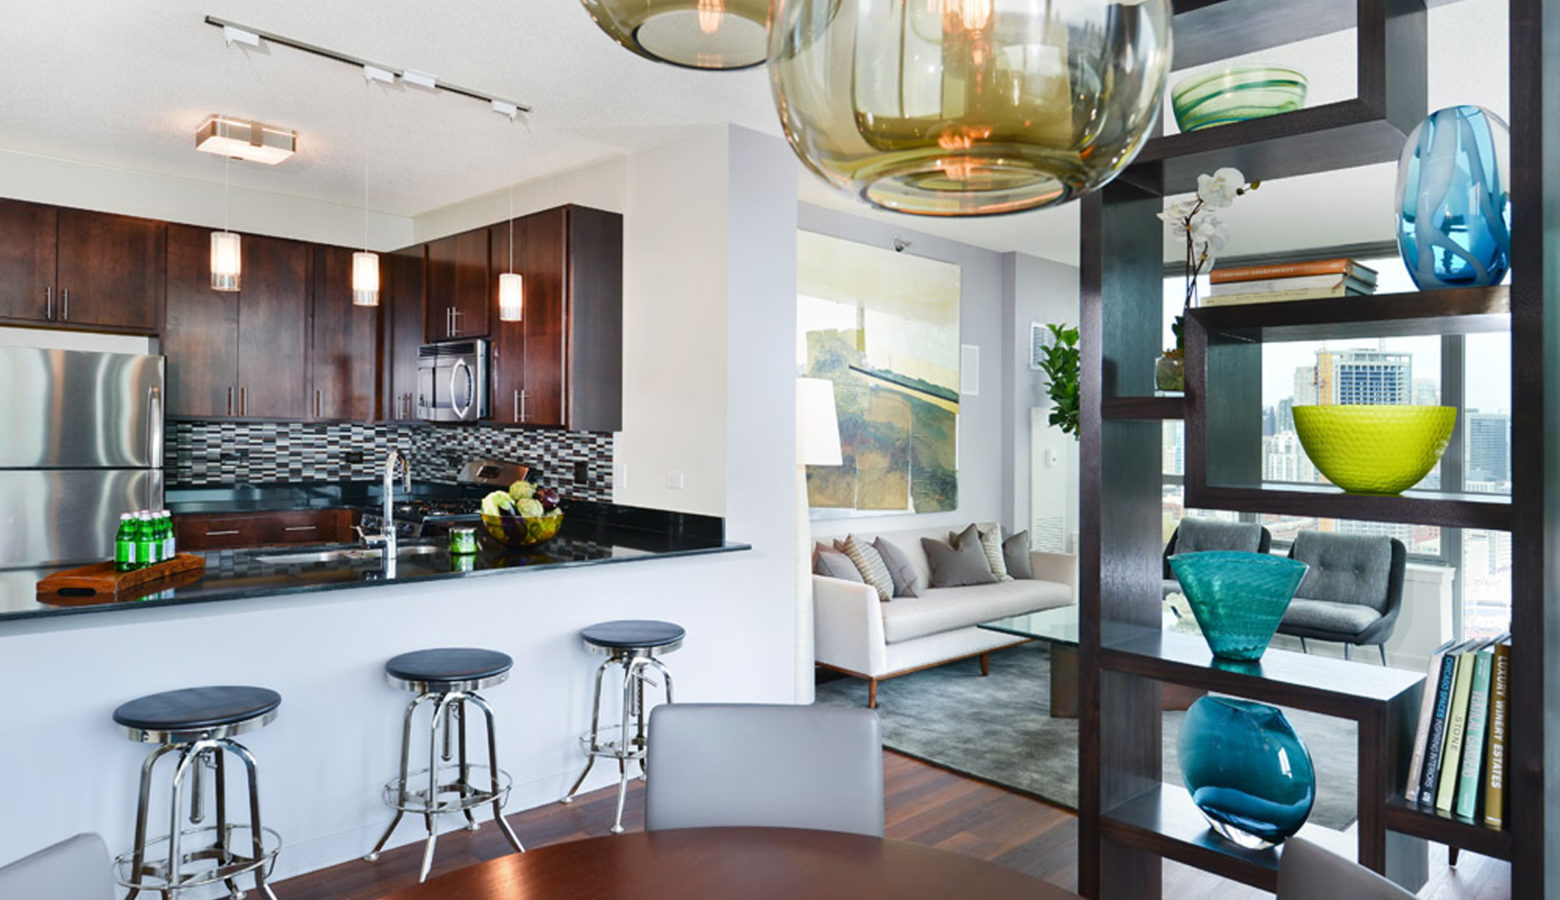 Five Ideas for Maximizing Space through Interior Design, Part Two